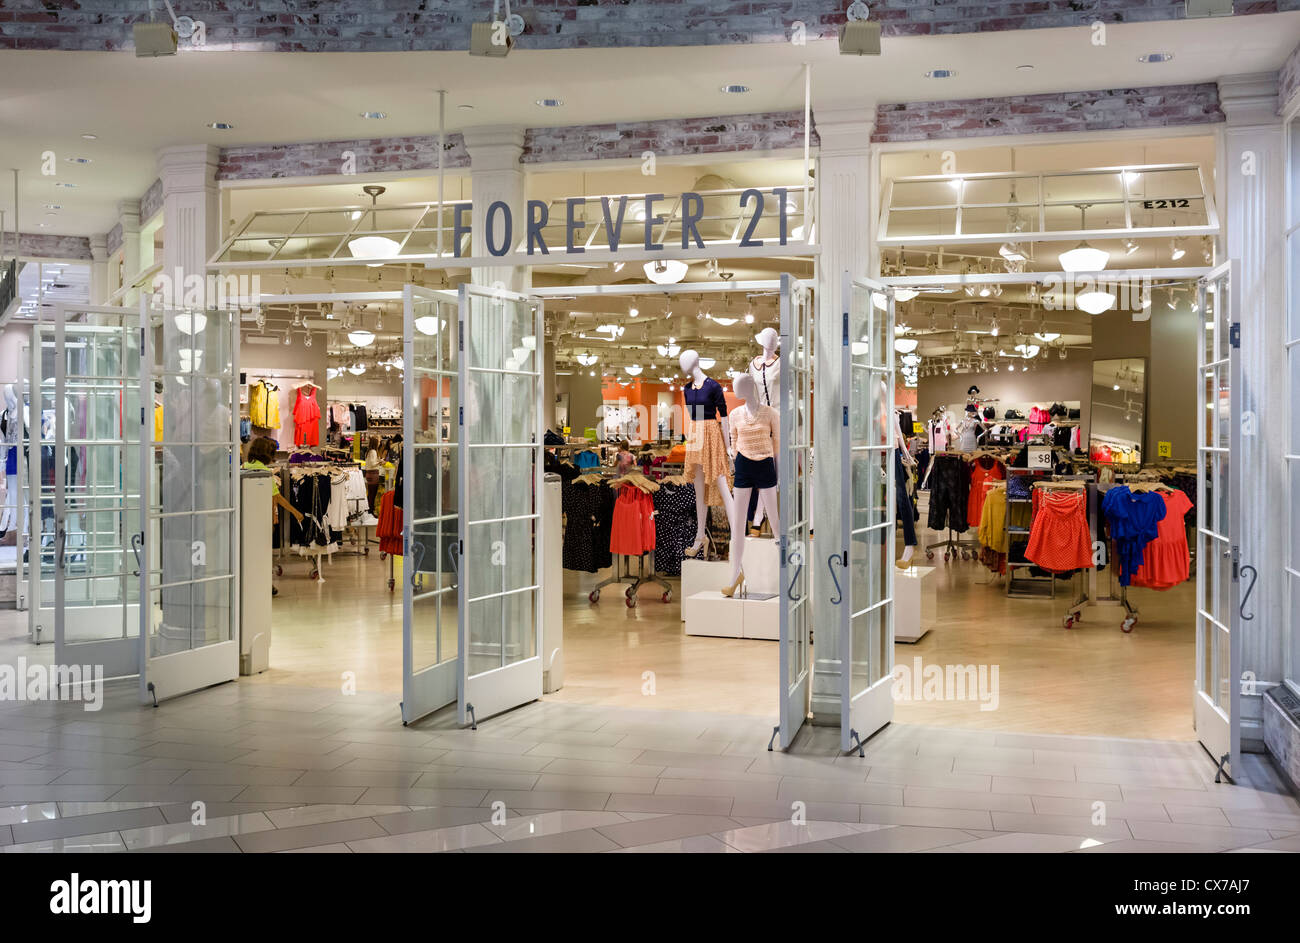 Forever 21 store in the Mall of America, Bloomington, Minneapolis, Minnesota, USA - Stock Image